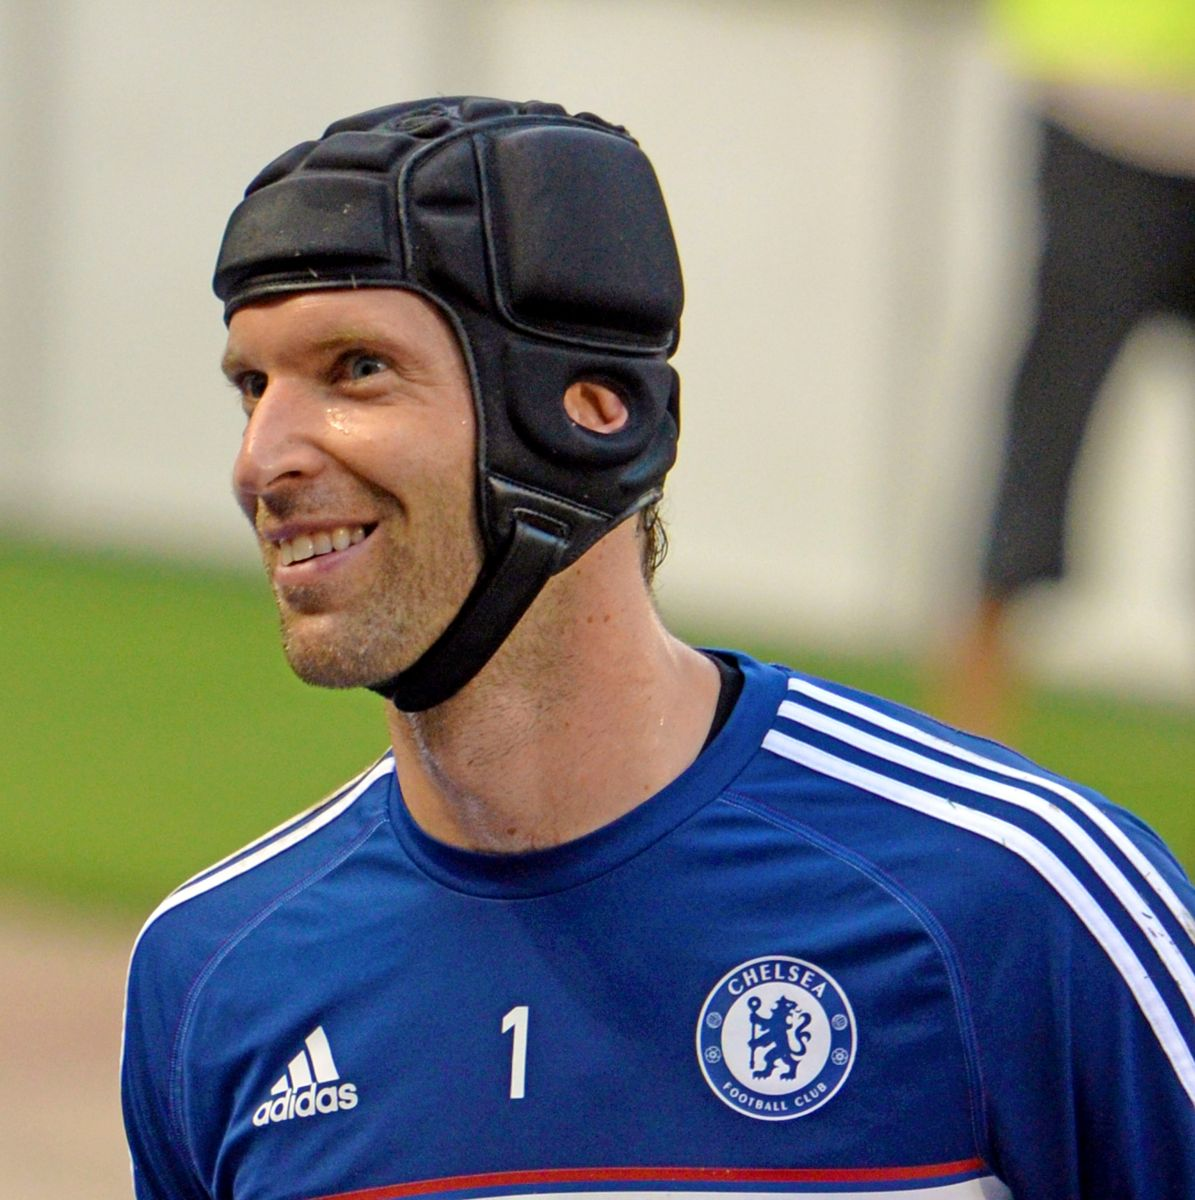 Can Soccer Headgear Reduce Brain Injuries?